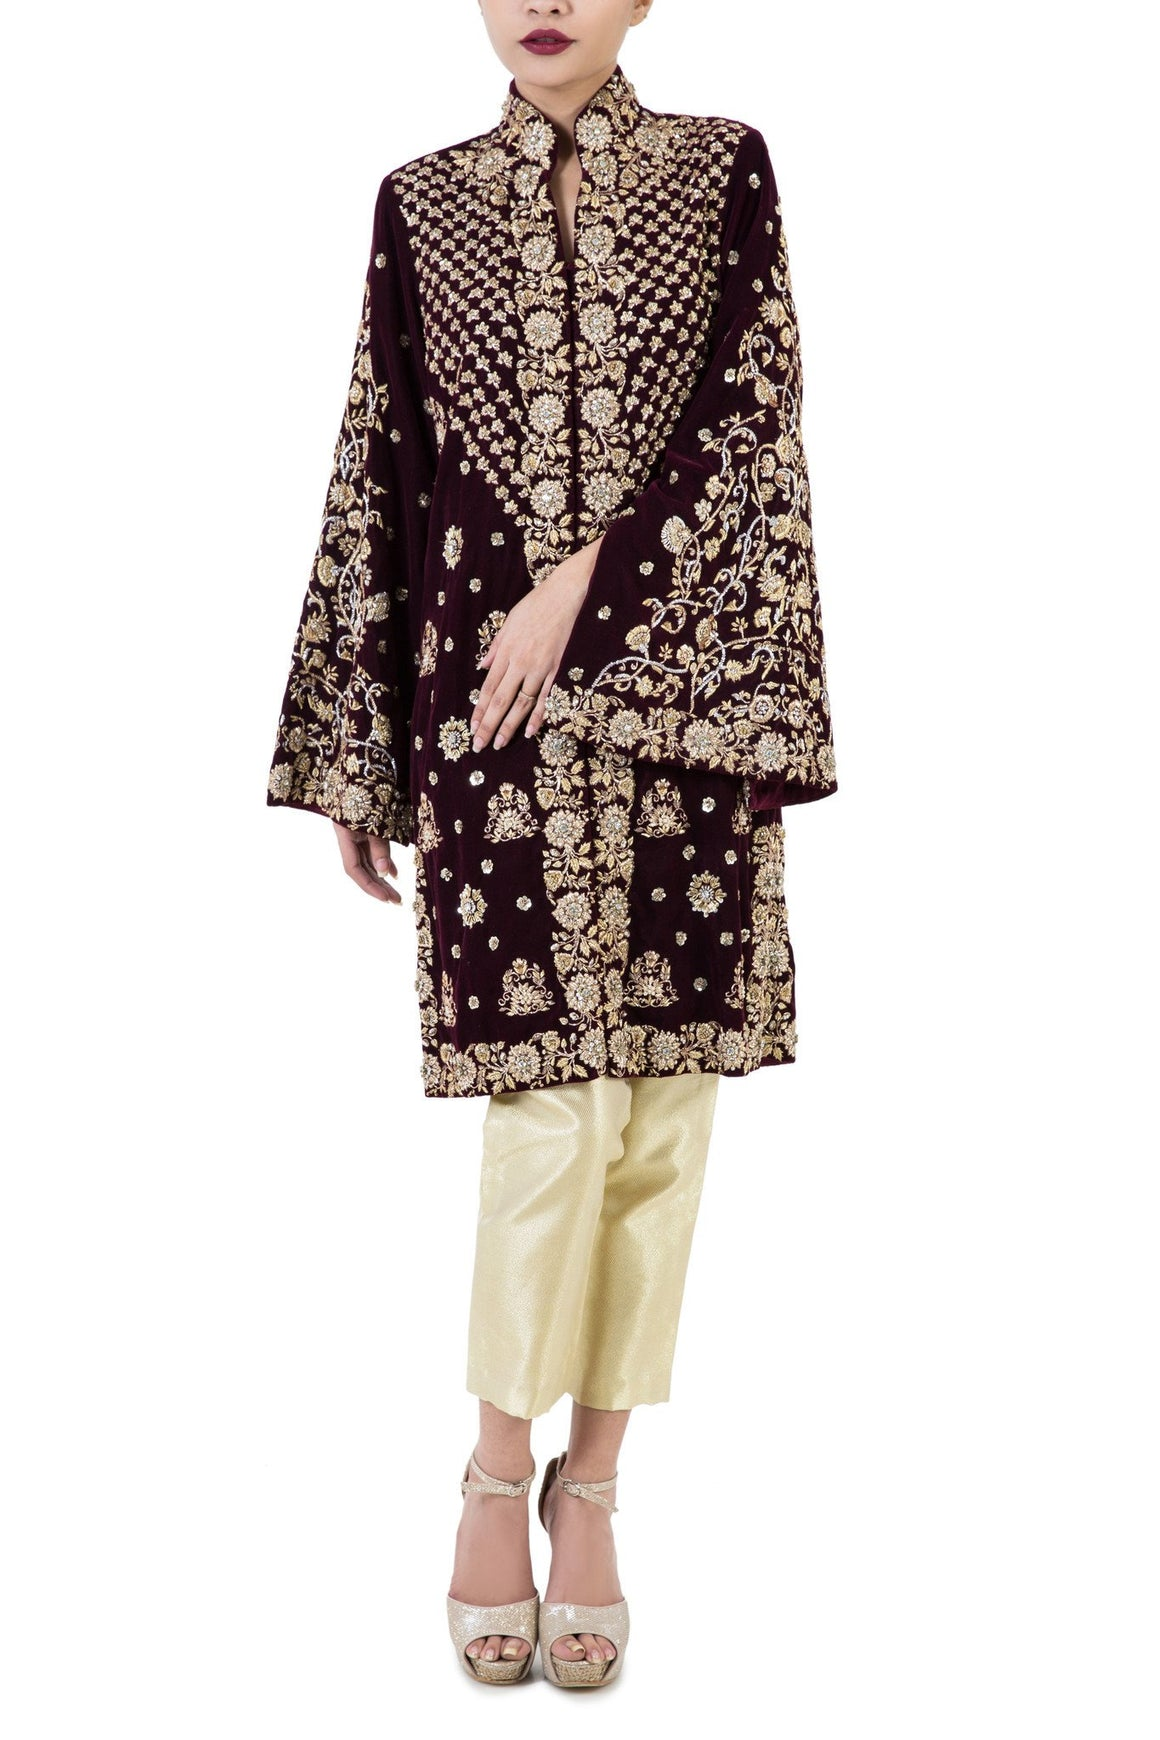 Maheen Karim - Plum Velvet Jacket with Zardozi Hand Embroidery And Pants